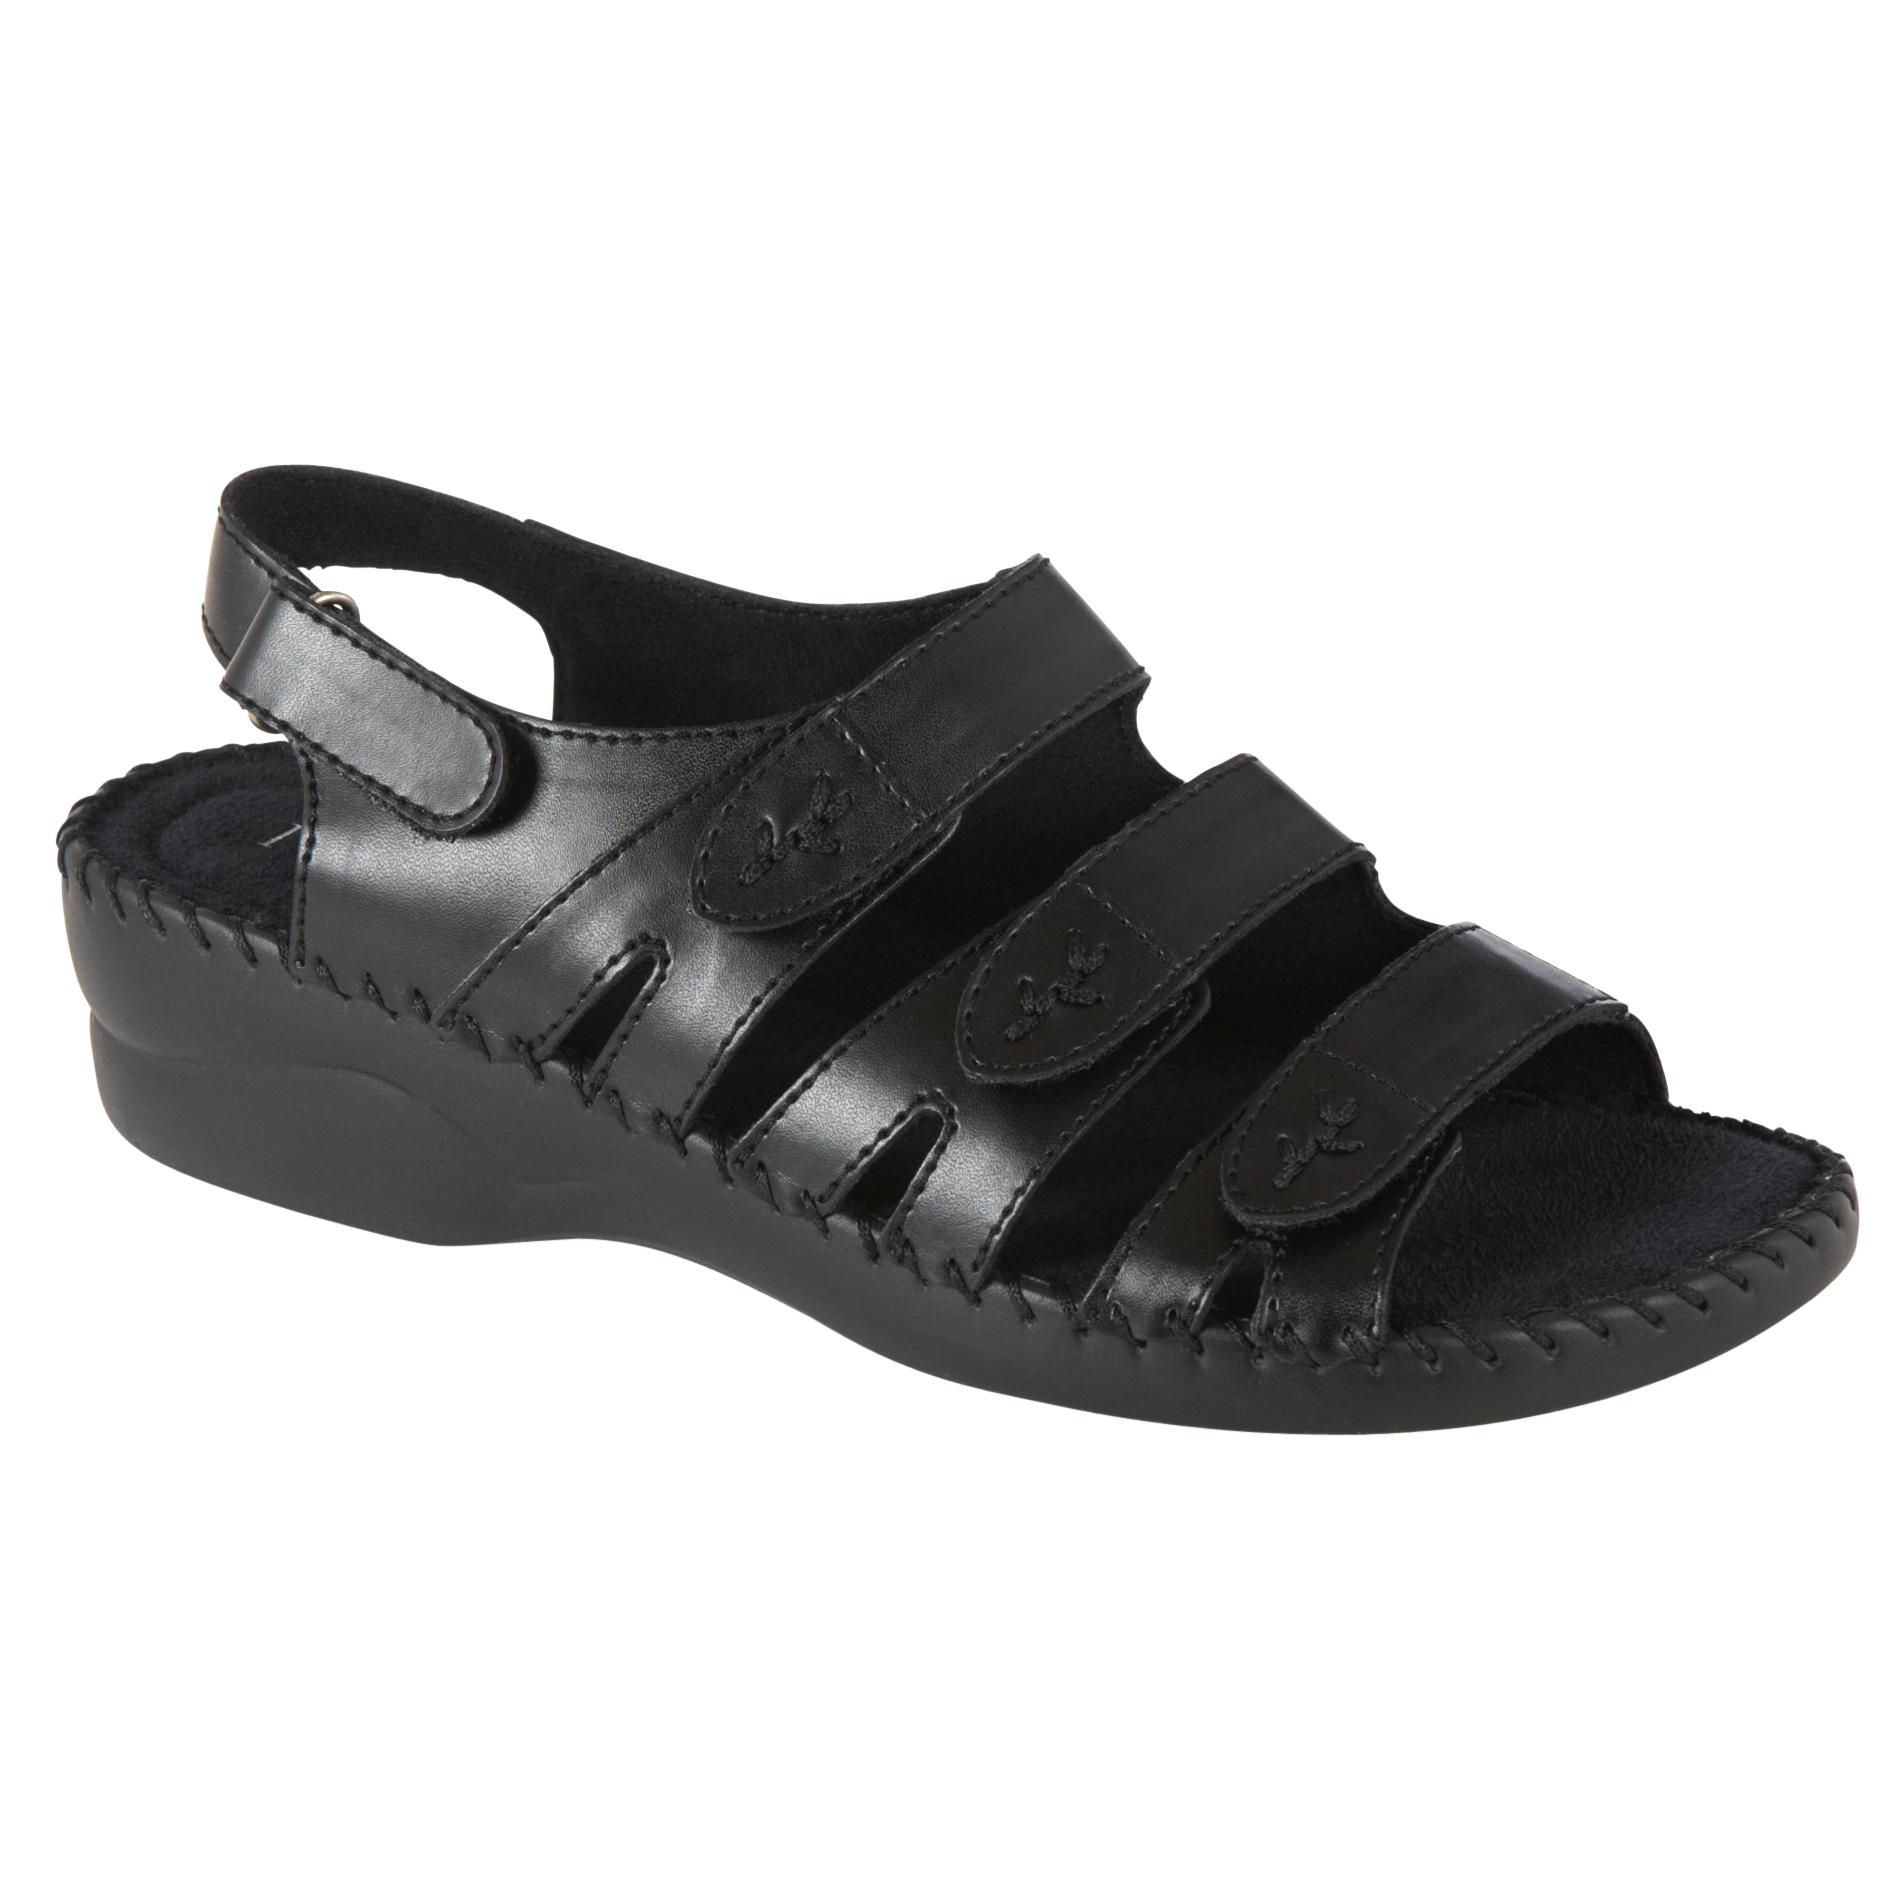 Women's Sandal Clara - Black